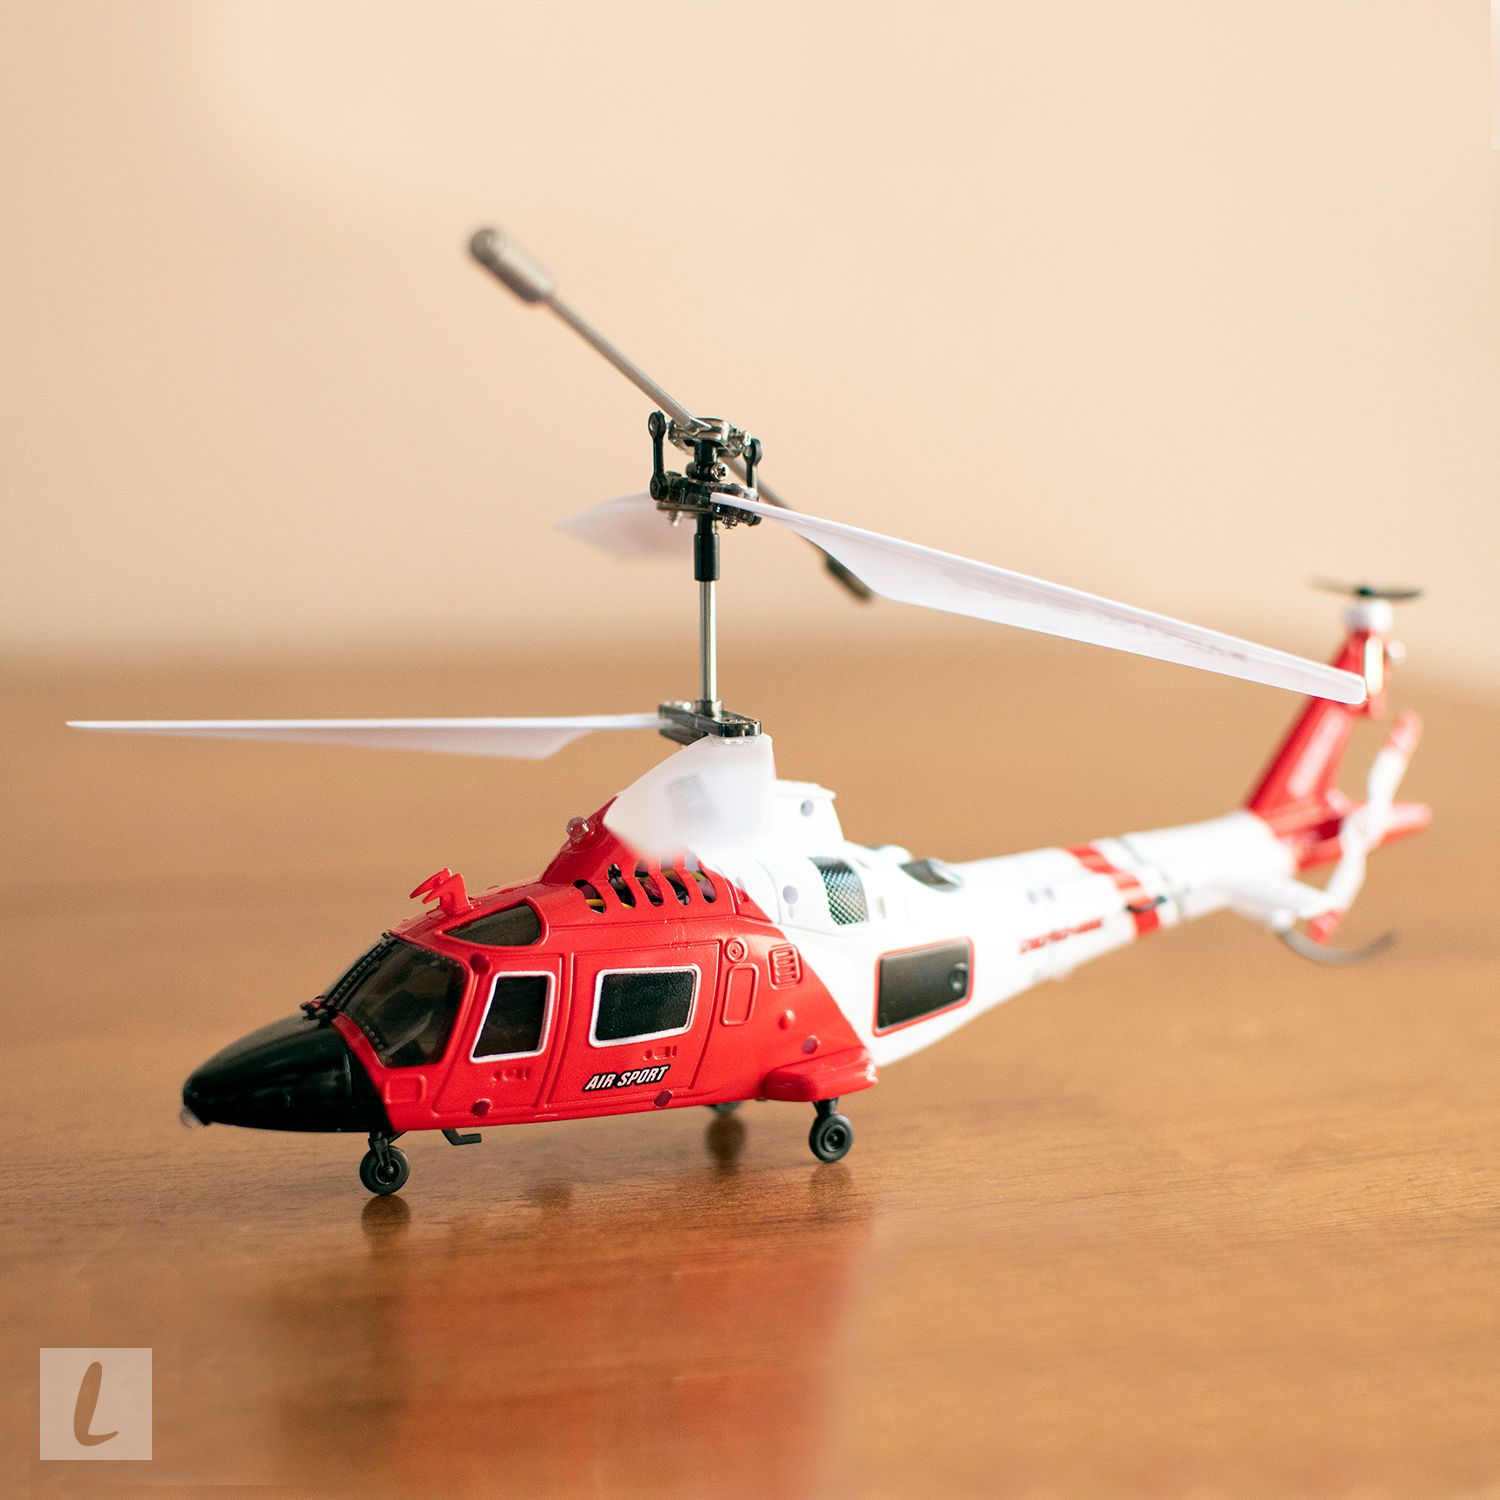 Syma S111g Rc Helicopter Review Low Cost Indoor Fun